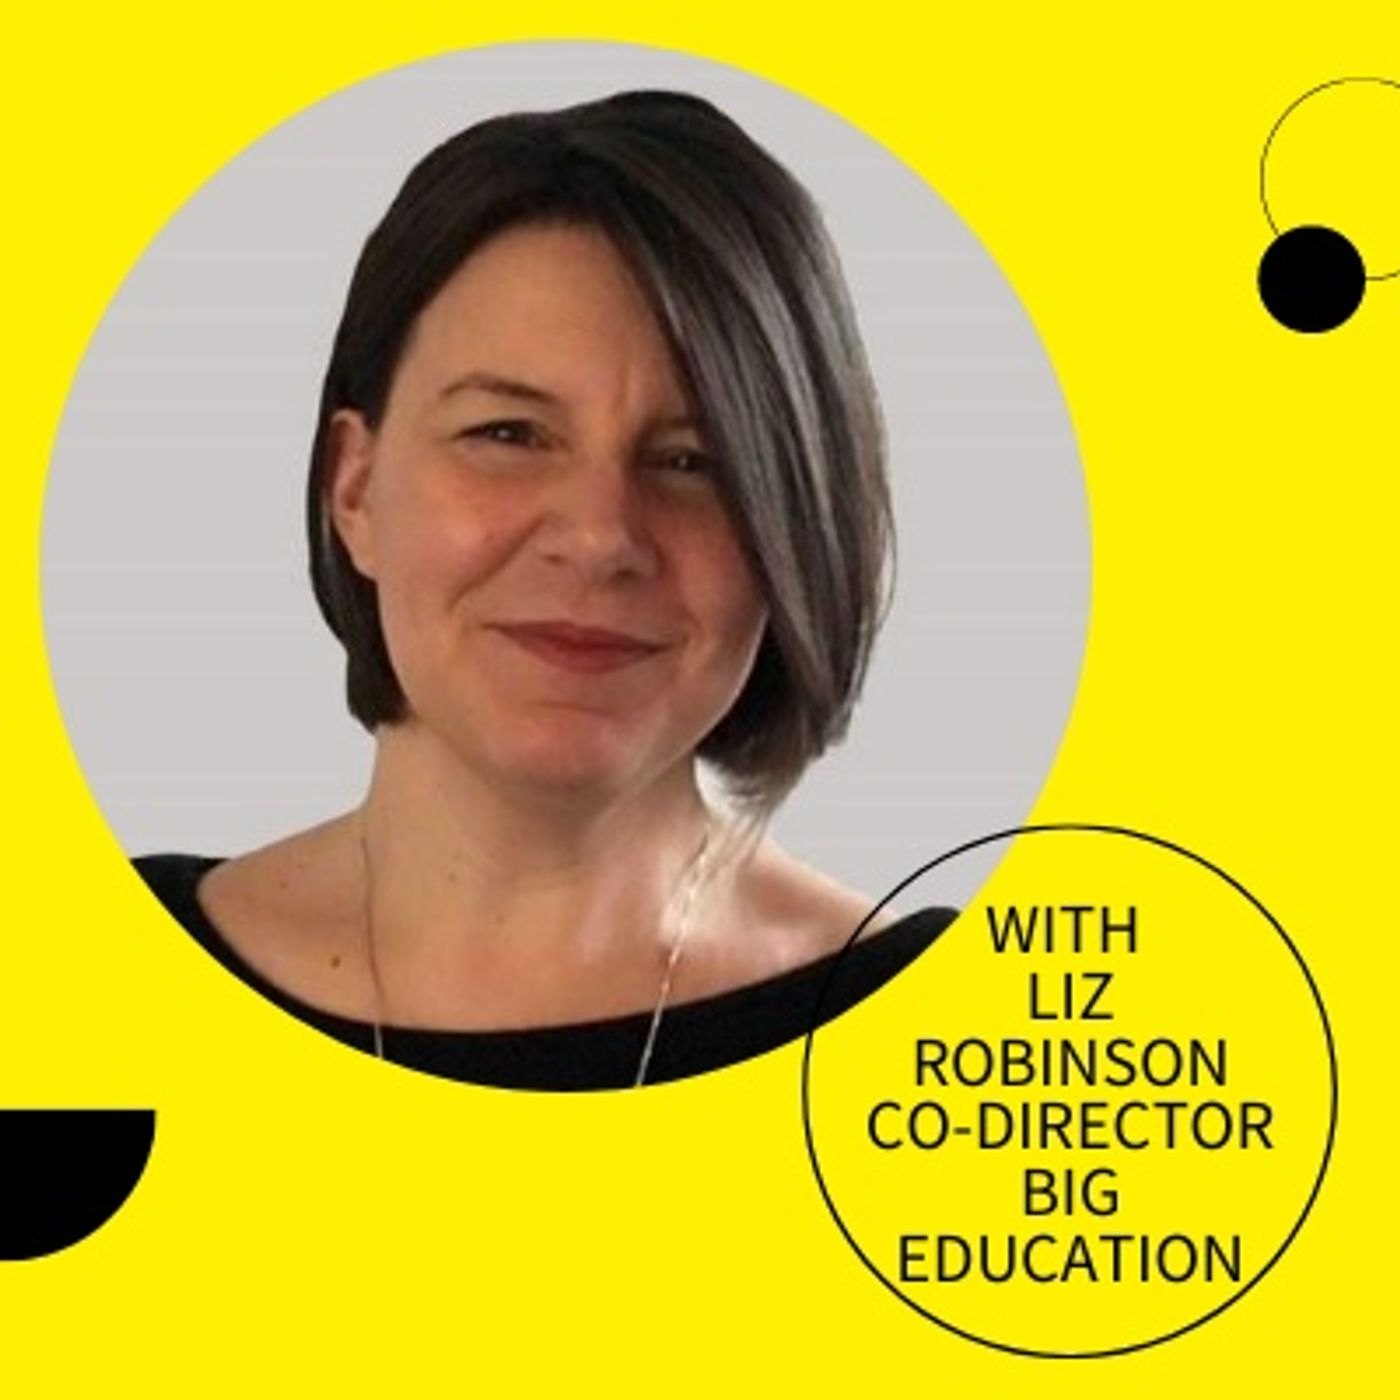 #5, Liz Robinson: What will school leaders do with this new rebellious streak?